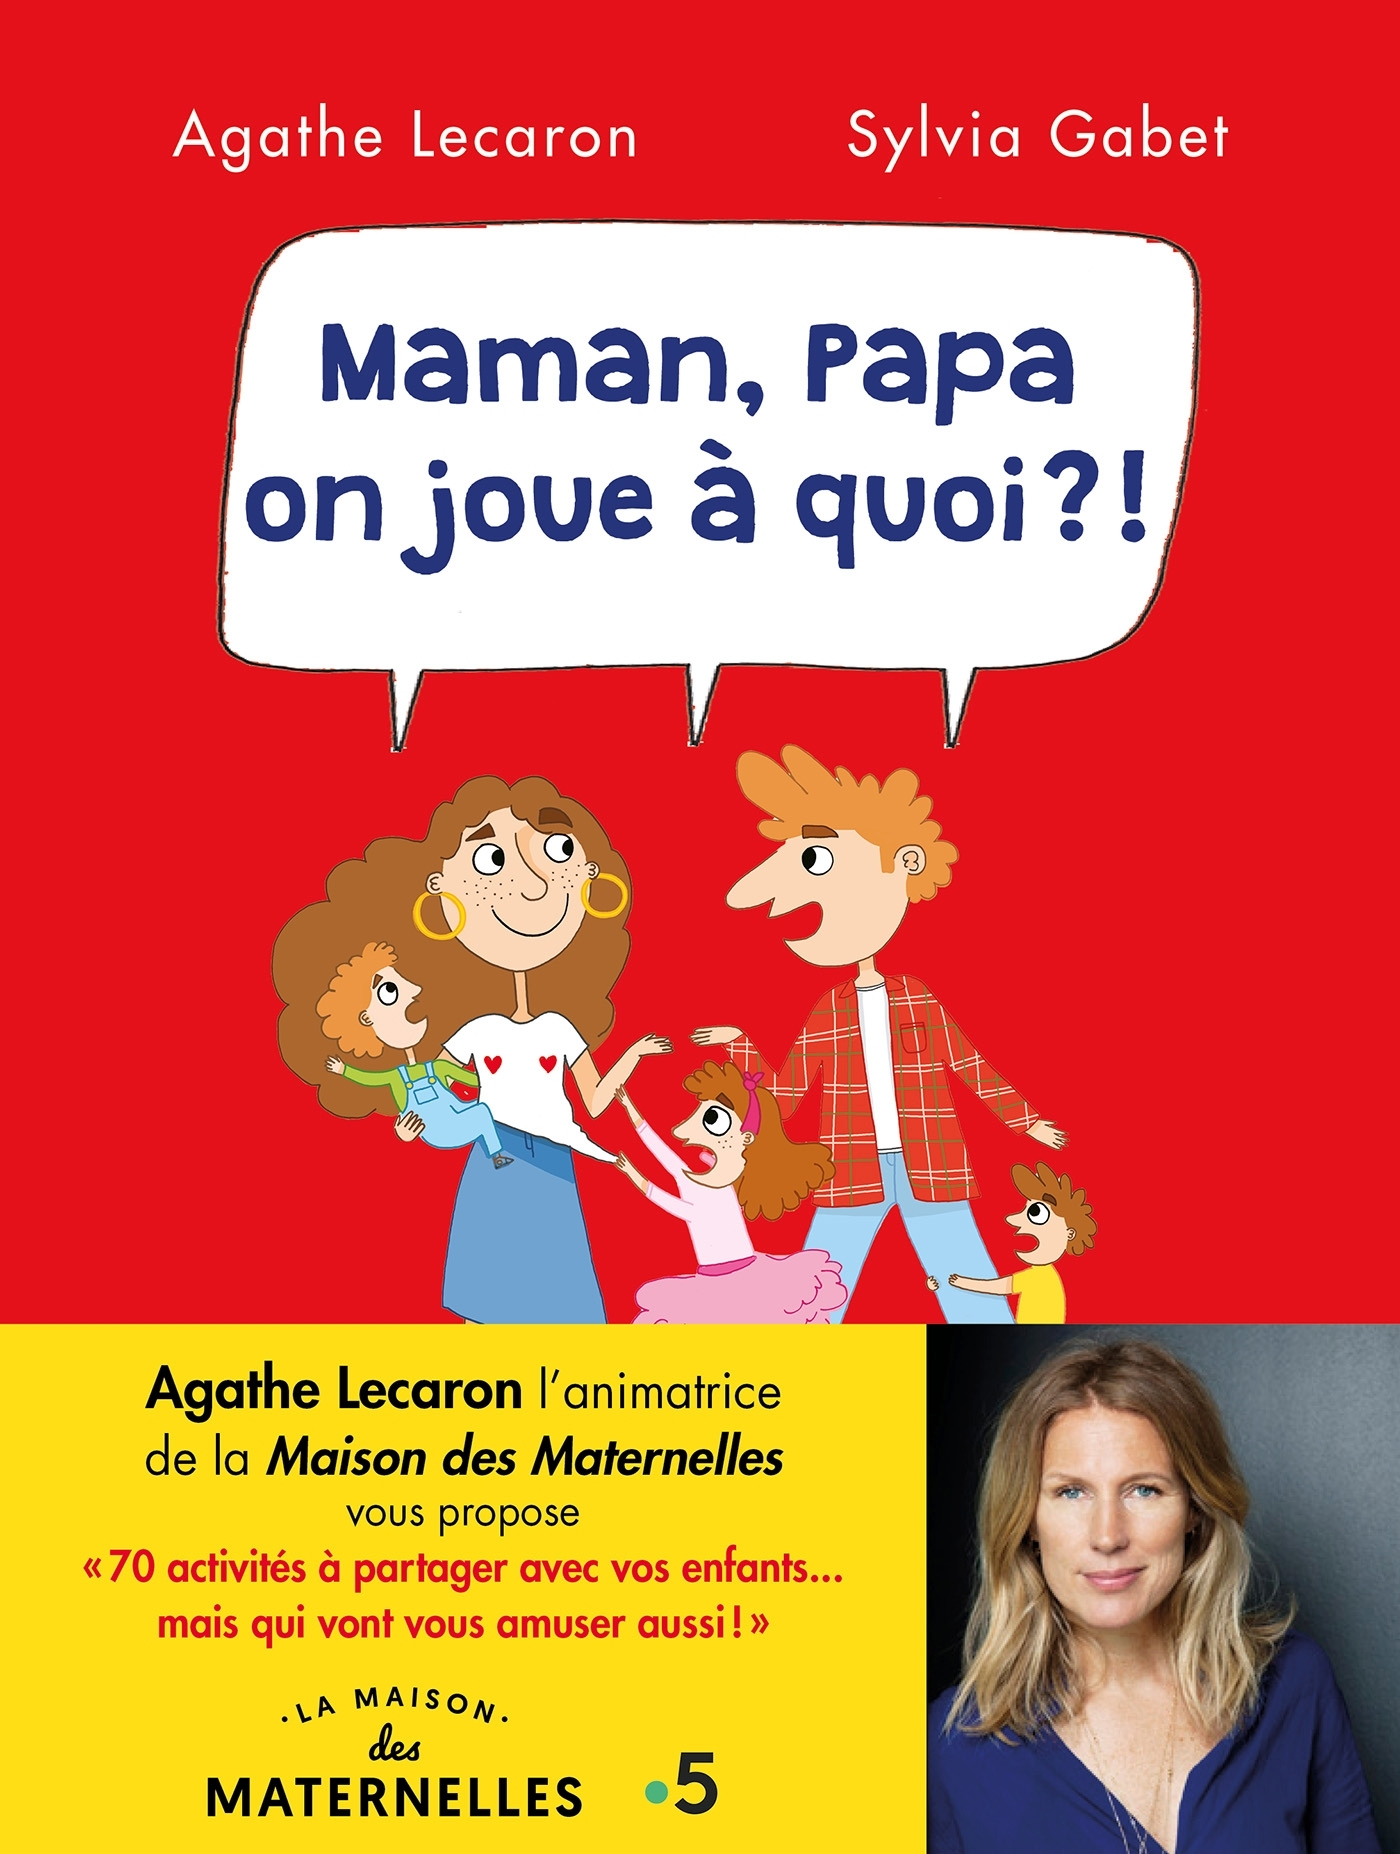 MAMAN, PAPA, ON JOUE A QUOI ?